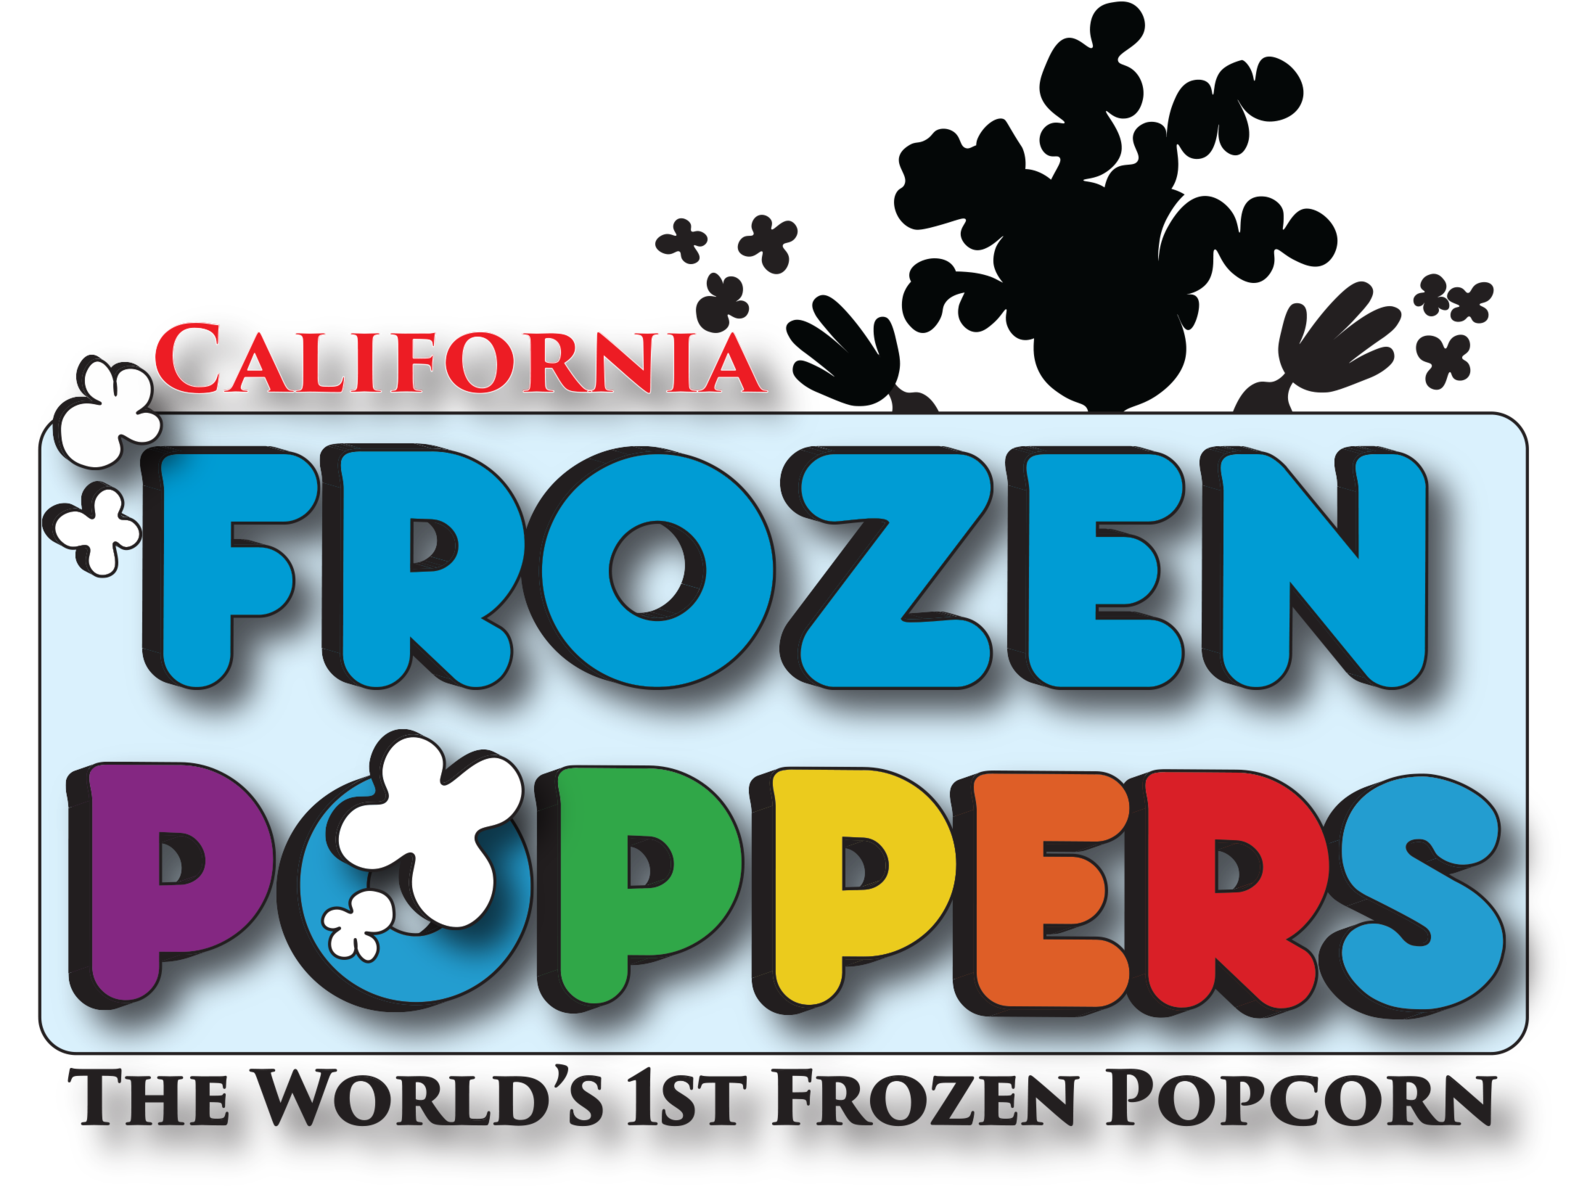 California Frozen Poppers